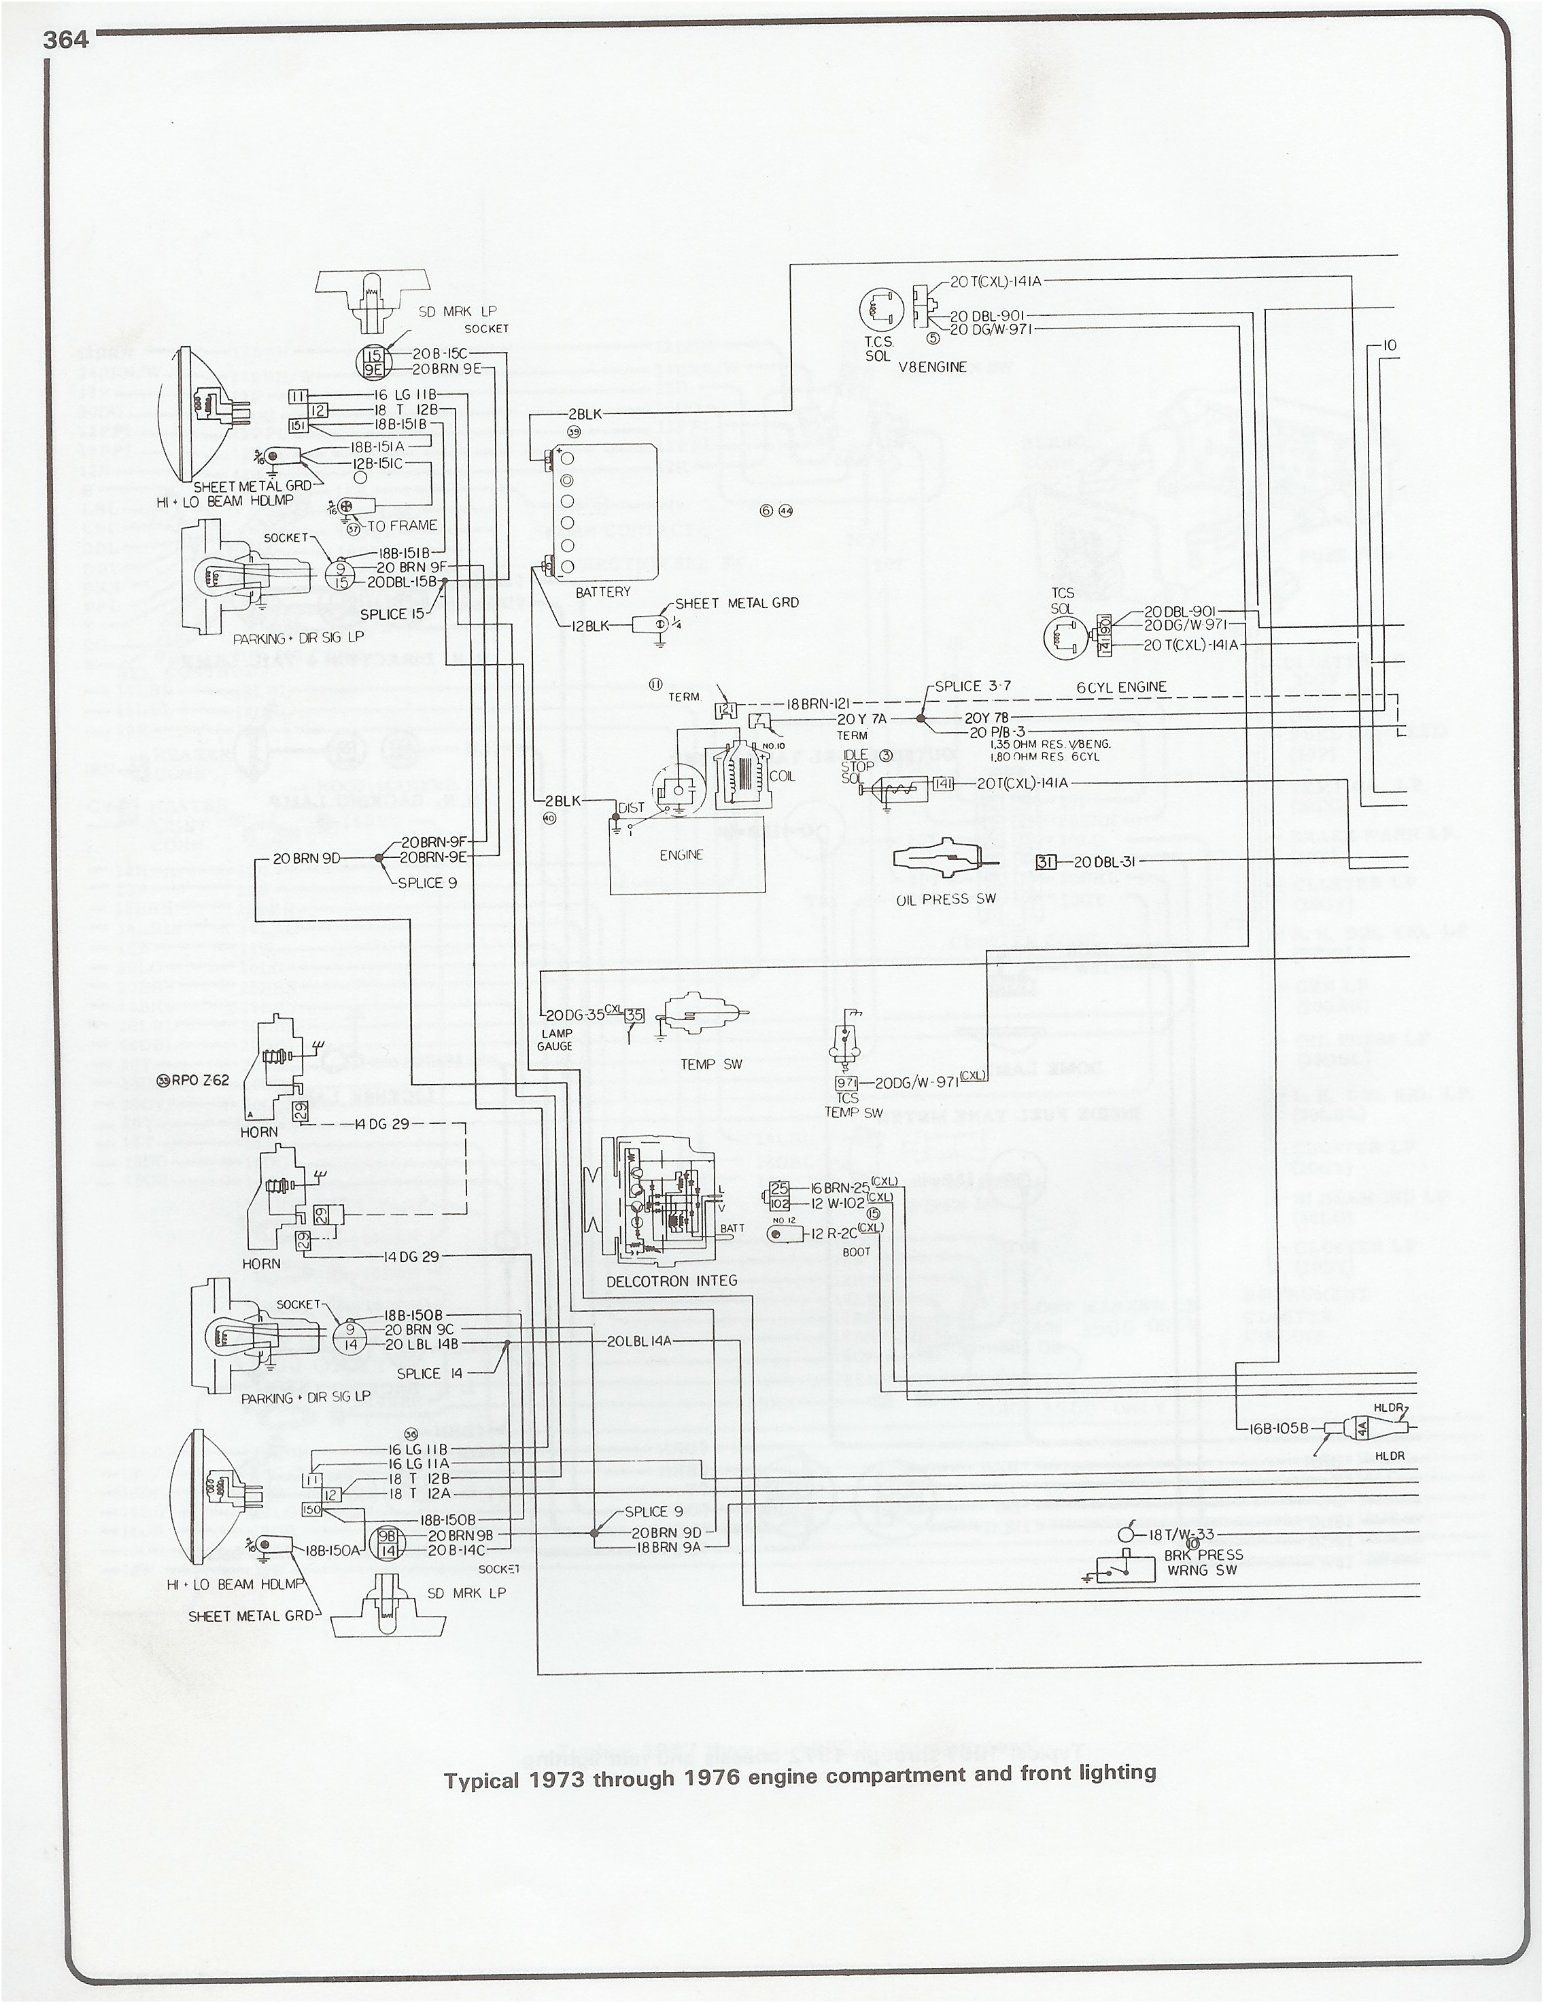 hight resolution of wiring diagram 1973 1976 chevy pickup chevy wiring diagram 76 gmc tail light wiring